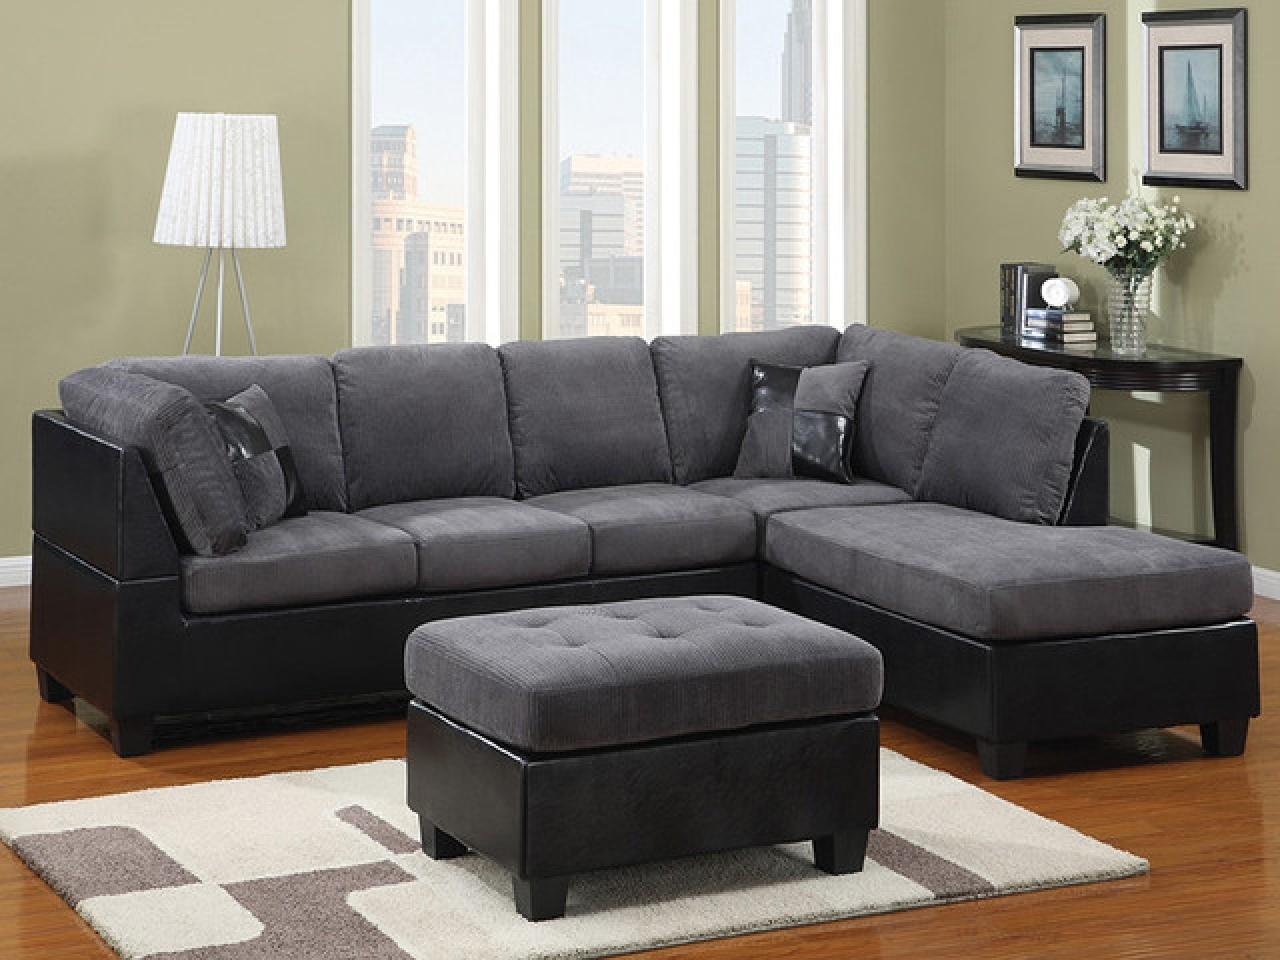 Grey Sectional Sofas With Chaise Intended For Most Up To Date Furniture: Pretty Collection Of Microfiber Sectional Sofa (Gallery 11 of 15)